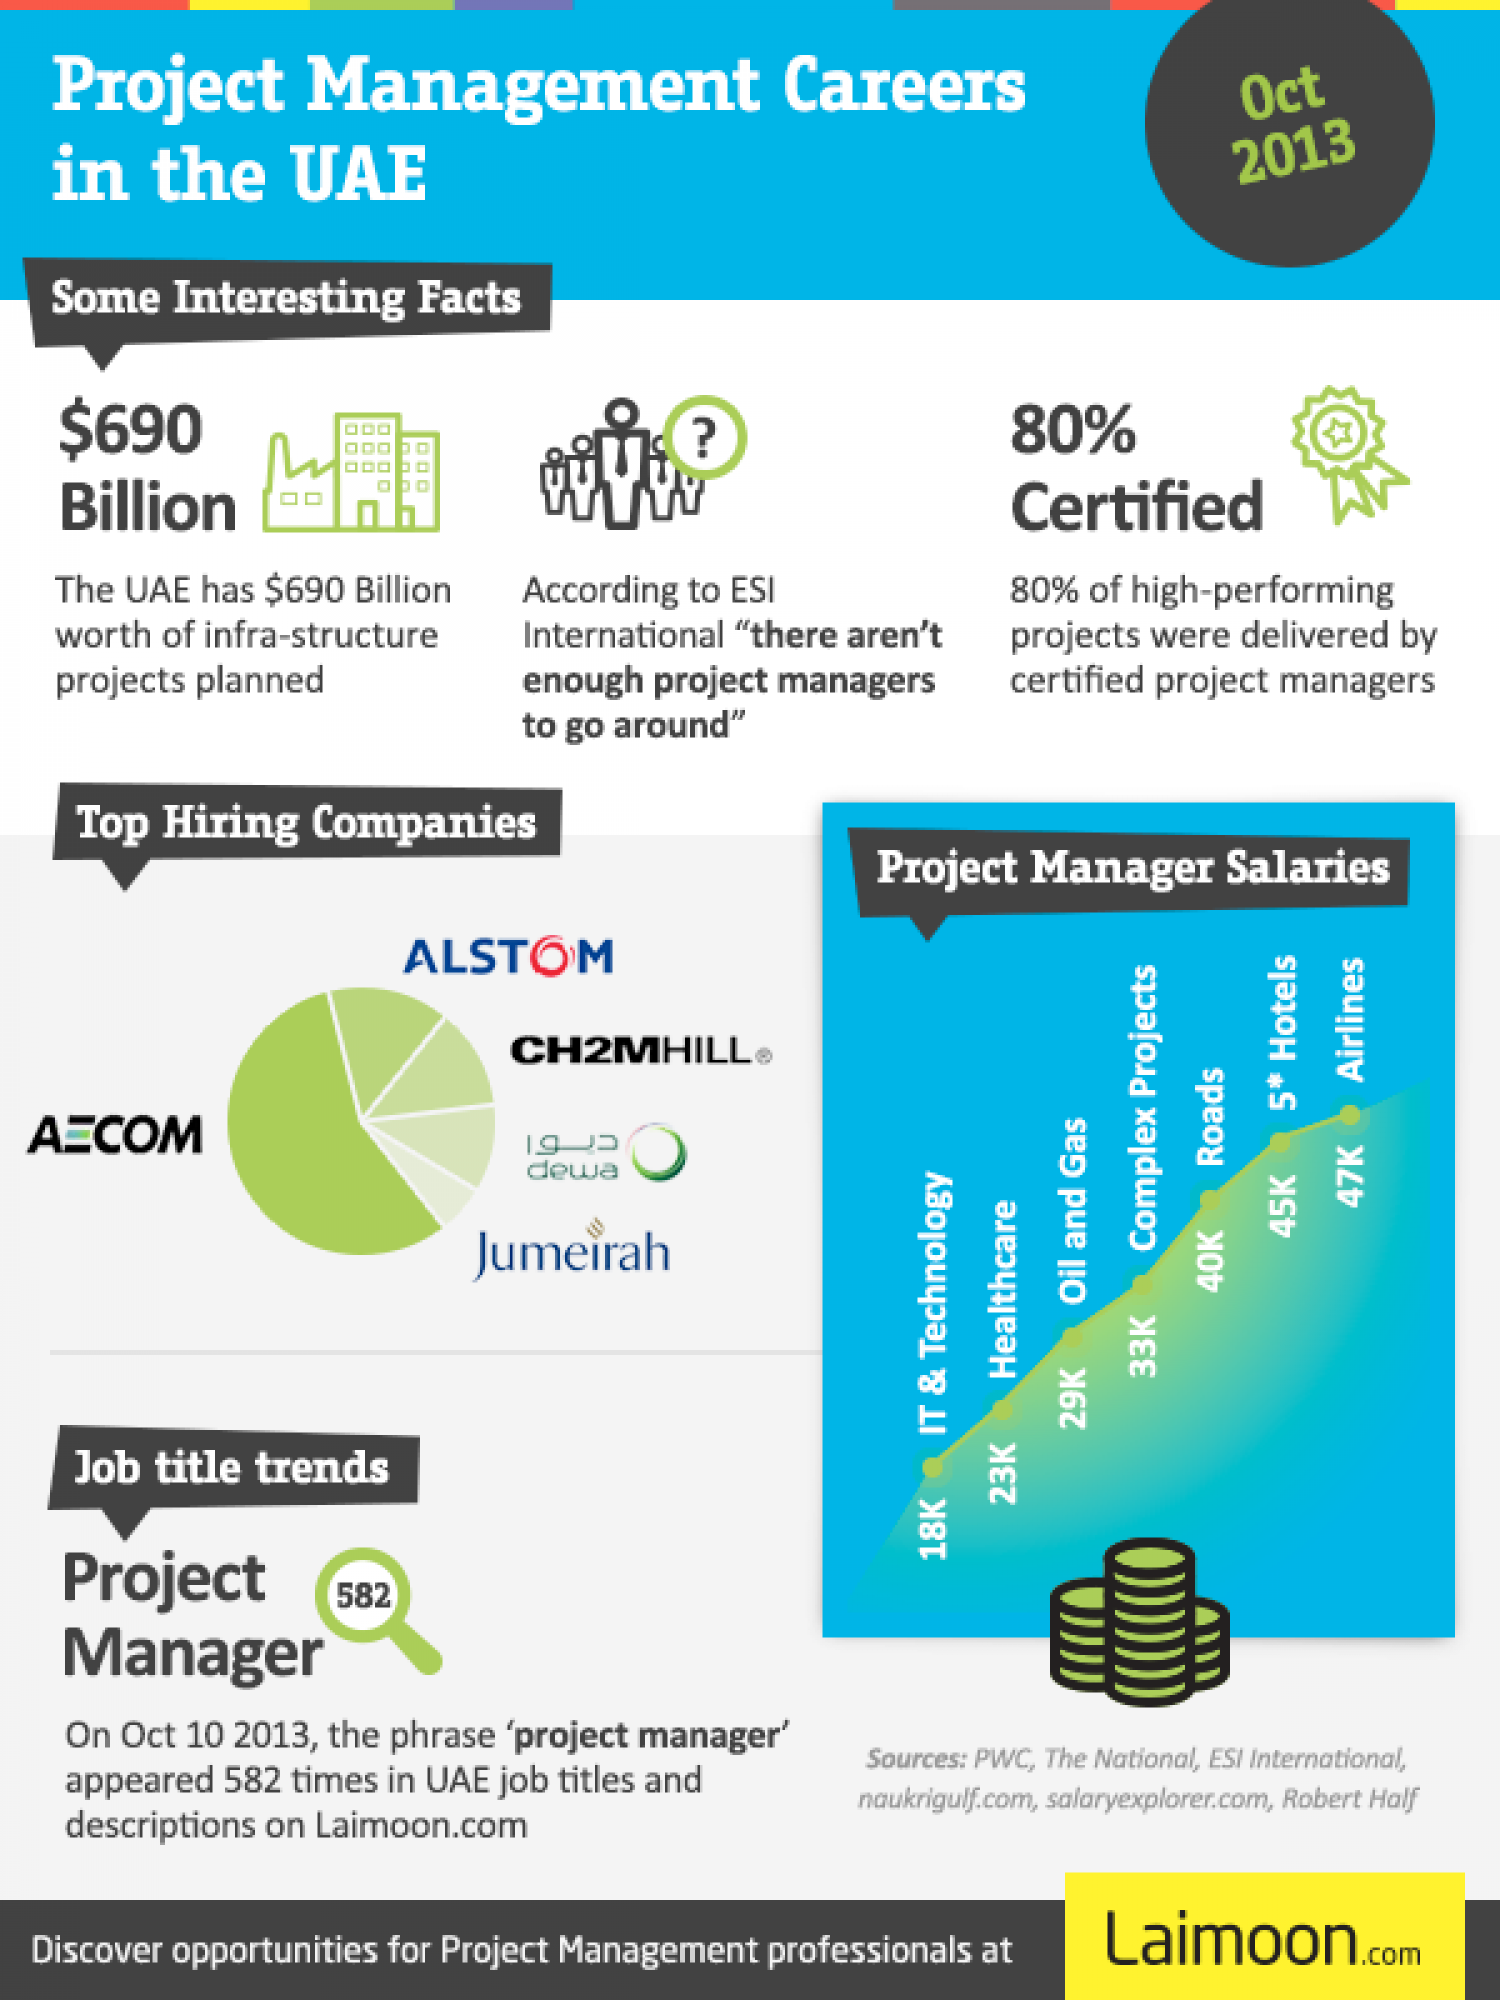 Project Manegement Careers in the UAE Infographic